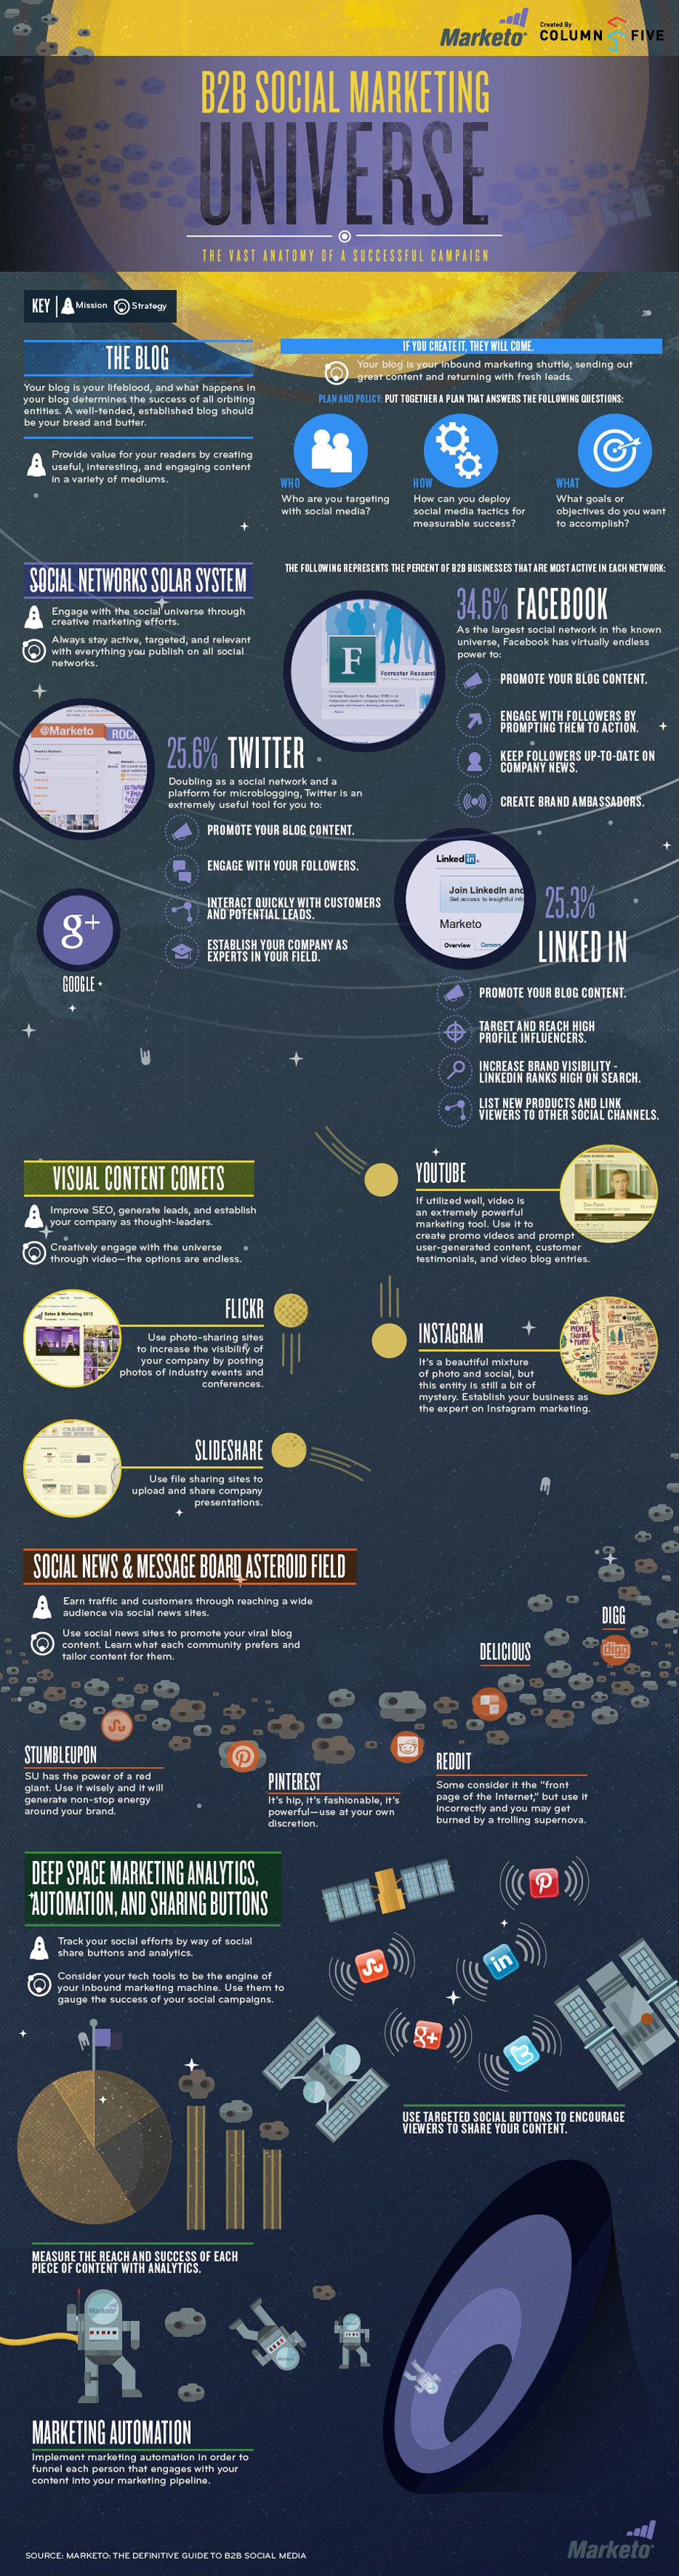 Infographic: B2B Social Marketing Universe: The Vast Anatomy of a Successful Campaign